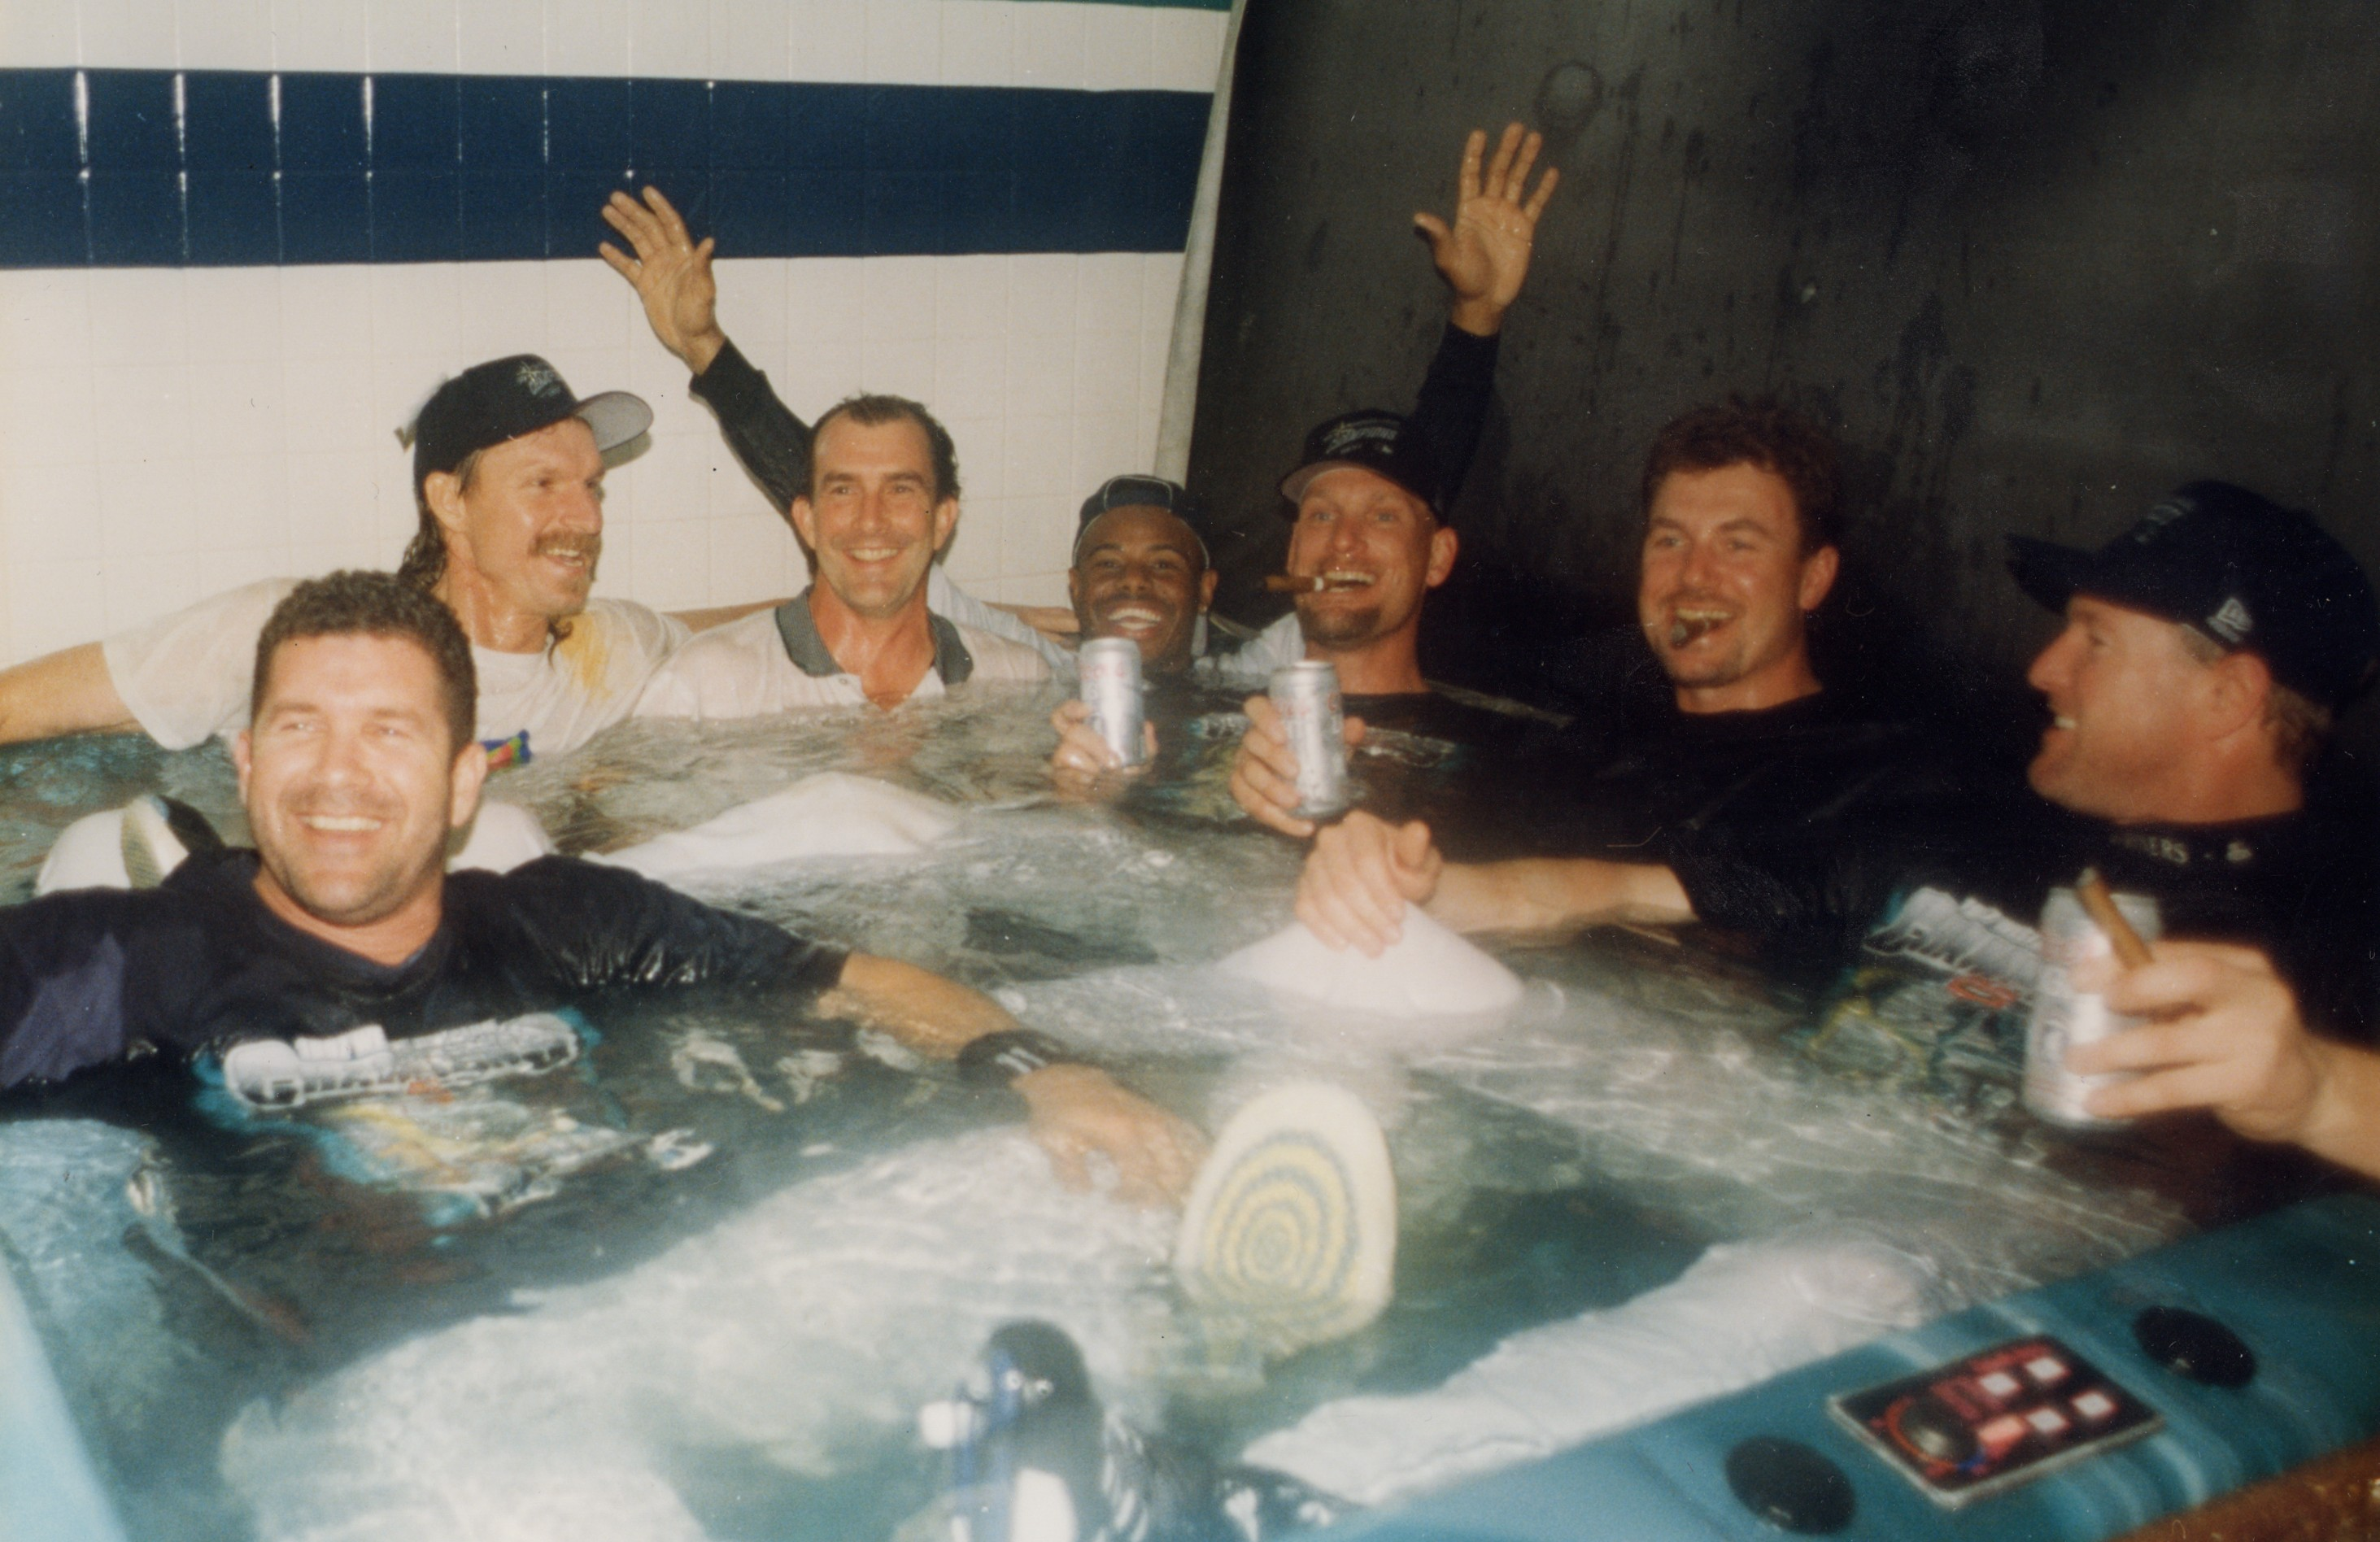 The Kingdome hot-tub party after winning the 1995 ALDS: From left, Edgar Martinez, Randy Johnson, Ken Griffey Jr., /// Mike Blowers and Norm Charlton. / Rick Griffin, Seattle Mariners